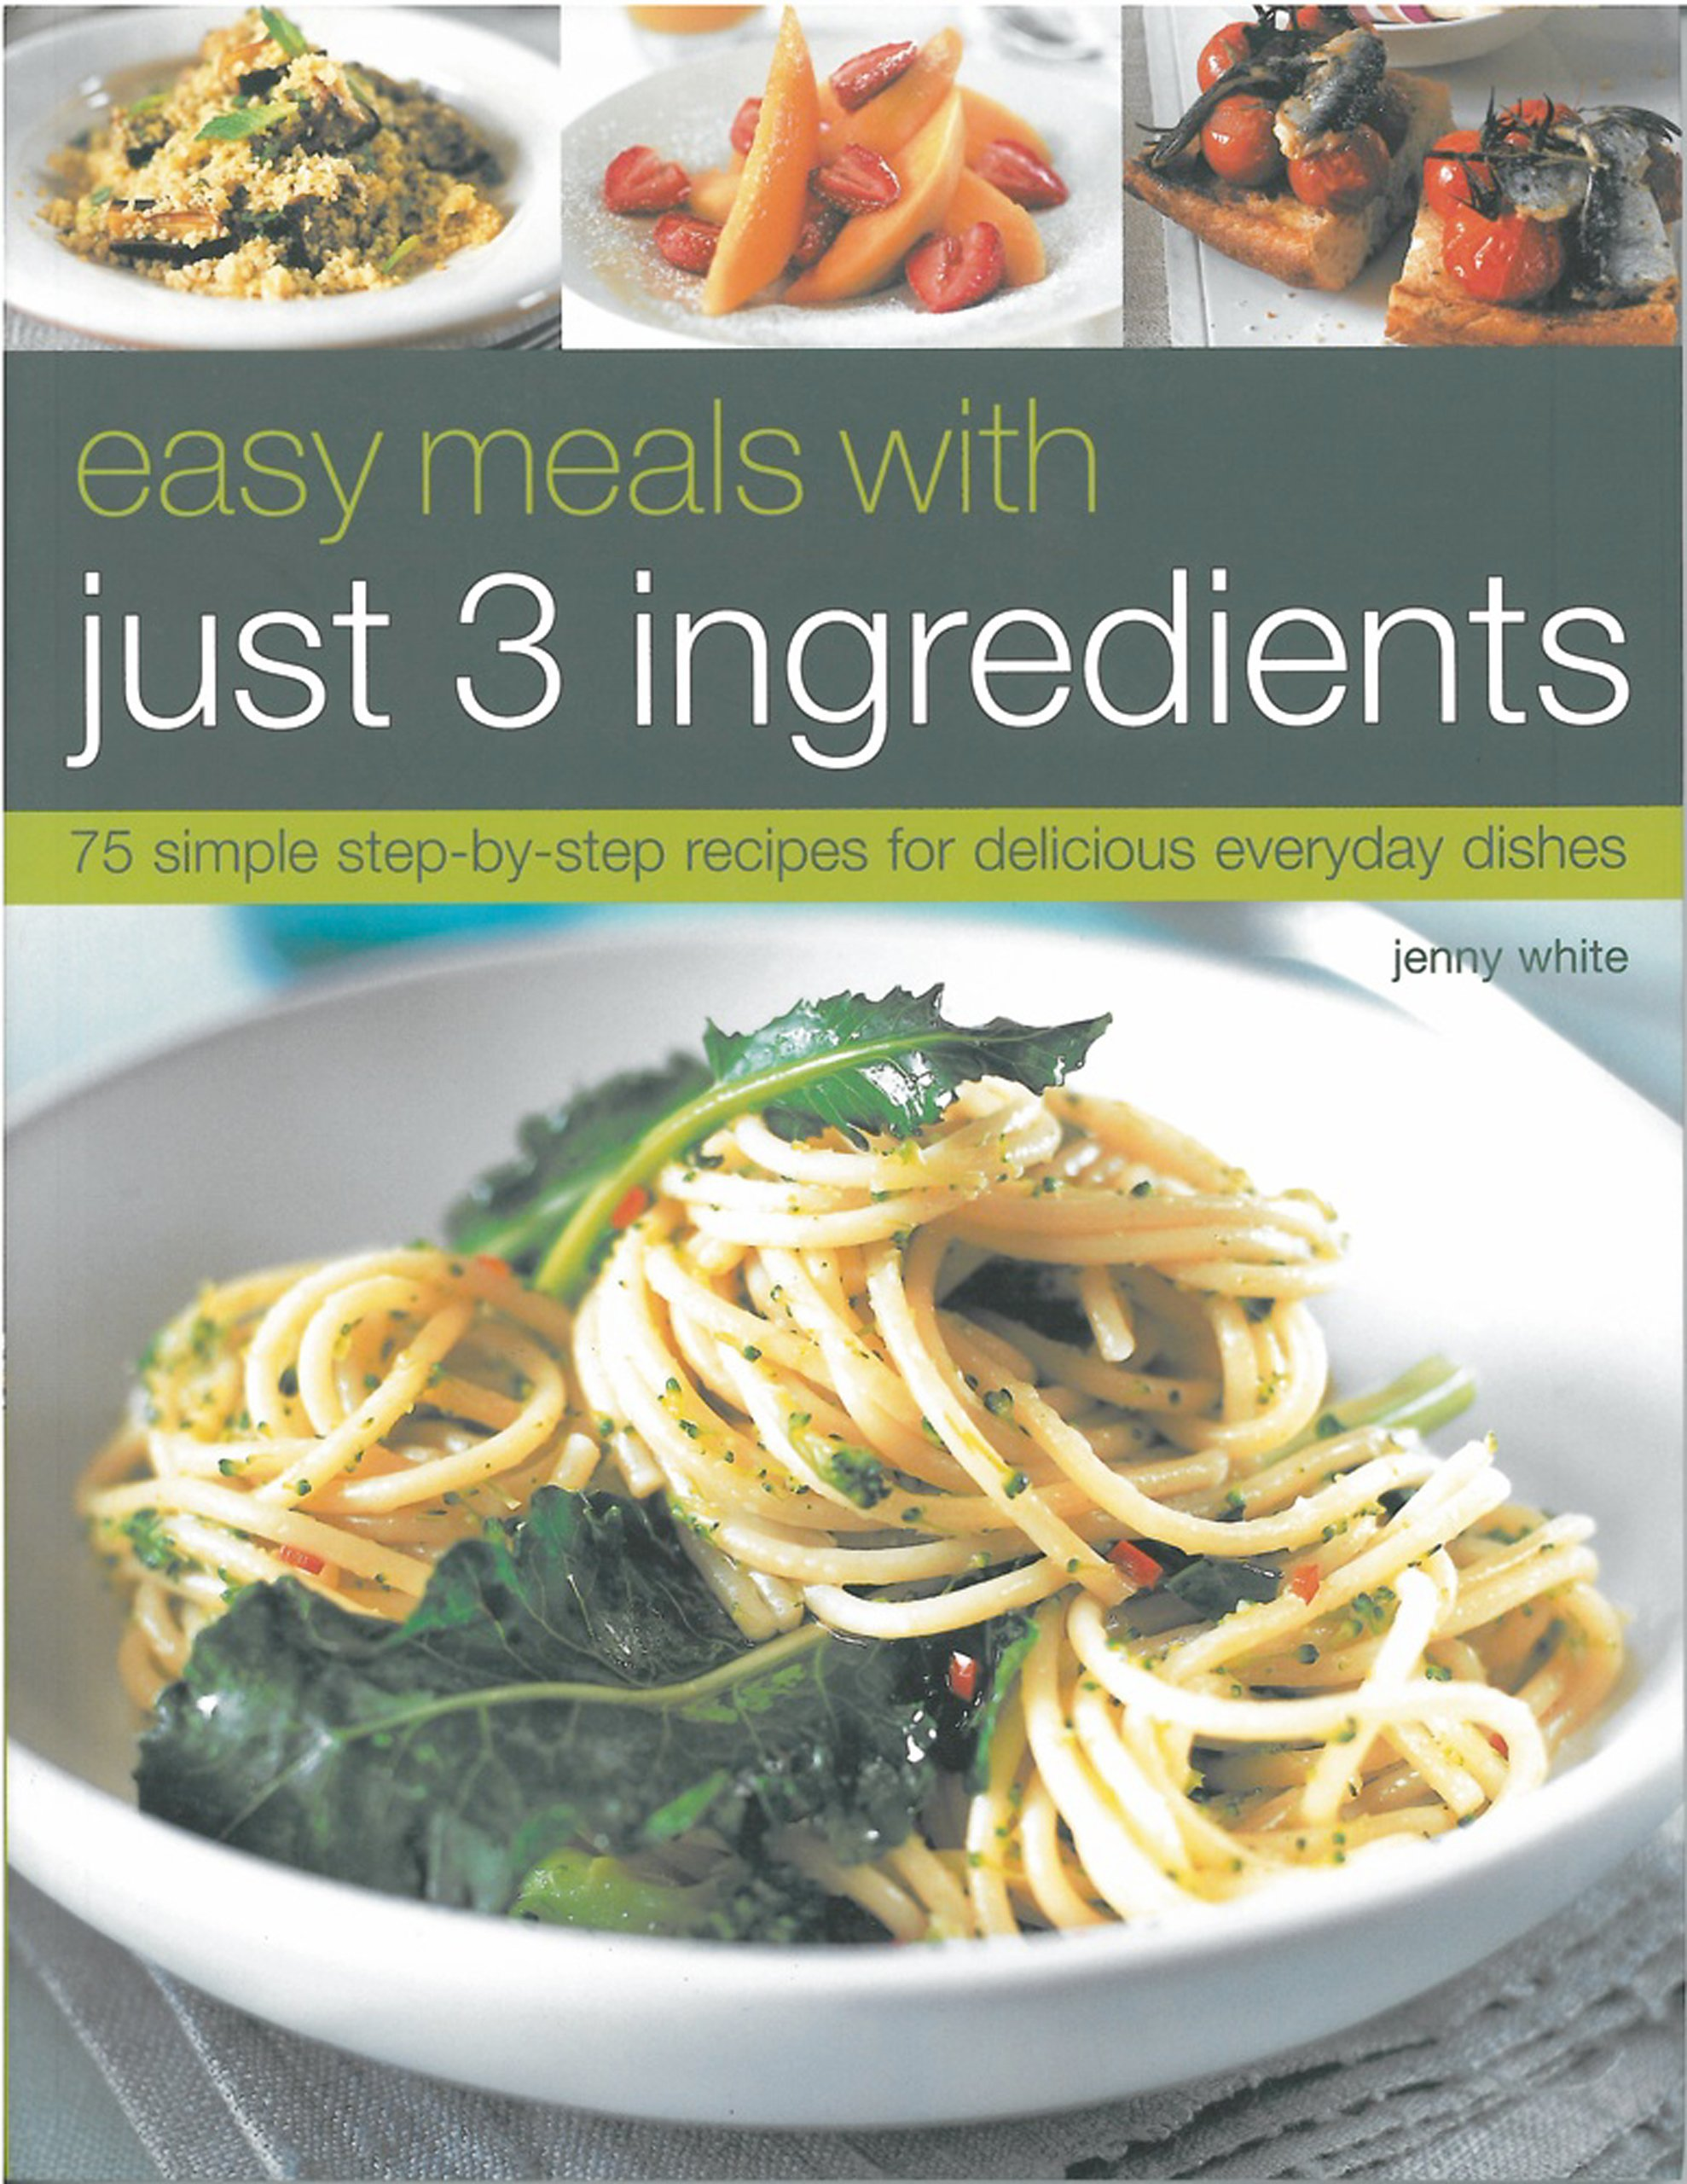 Easy meals with just 3 ingredients 75 simple step by step recipes easy meals with just 3 ingredients 75 simple step by step recipes for delicious everyday dishes amazon jenny white 9781844767823 books forumfinder Images